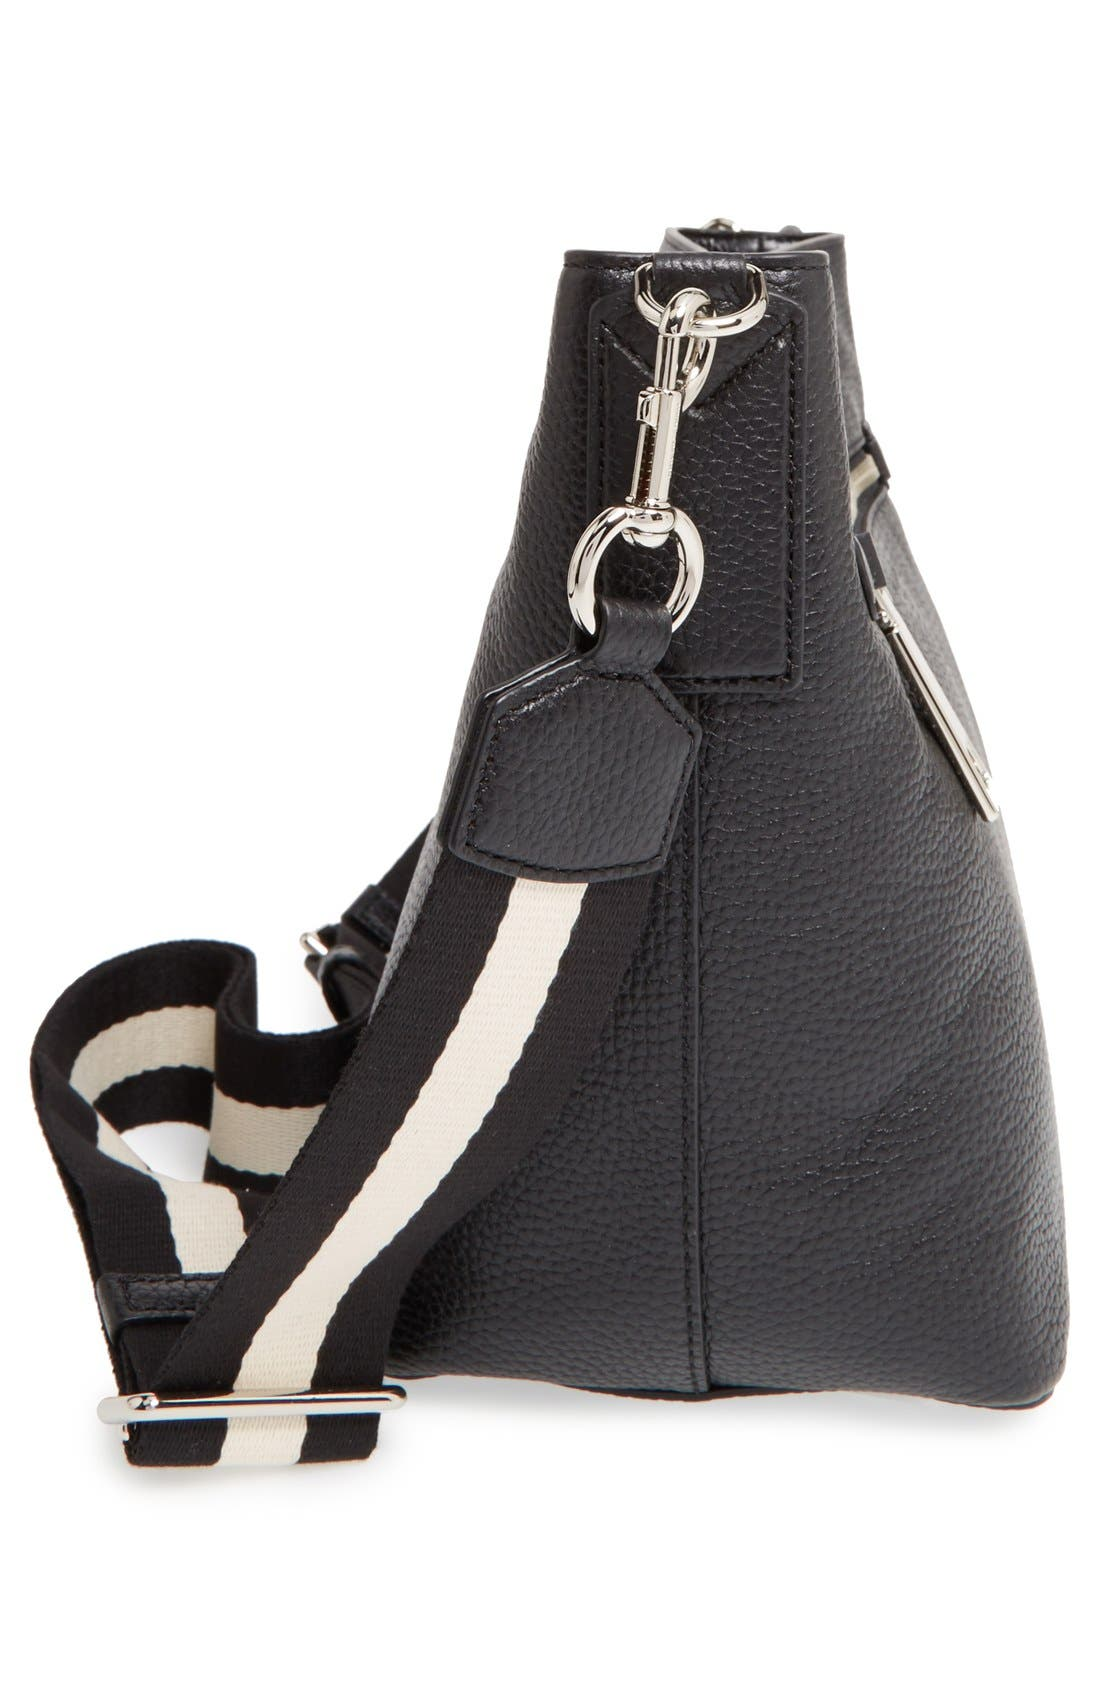 MARC JACOBS, 'Gotham' Leather Bucket Bag, Alternate thumbnail 6, color, 001